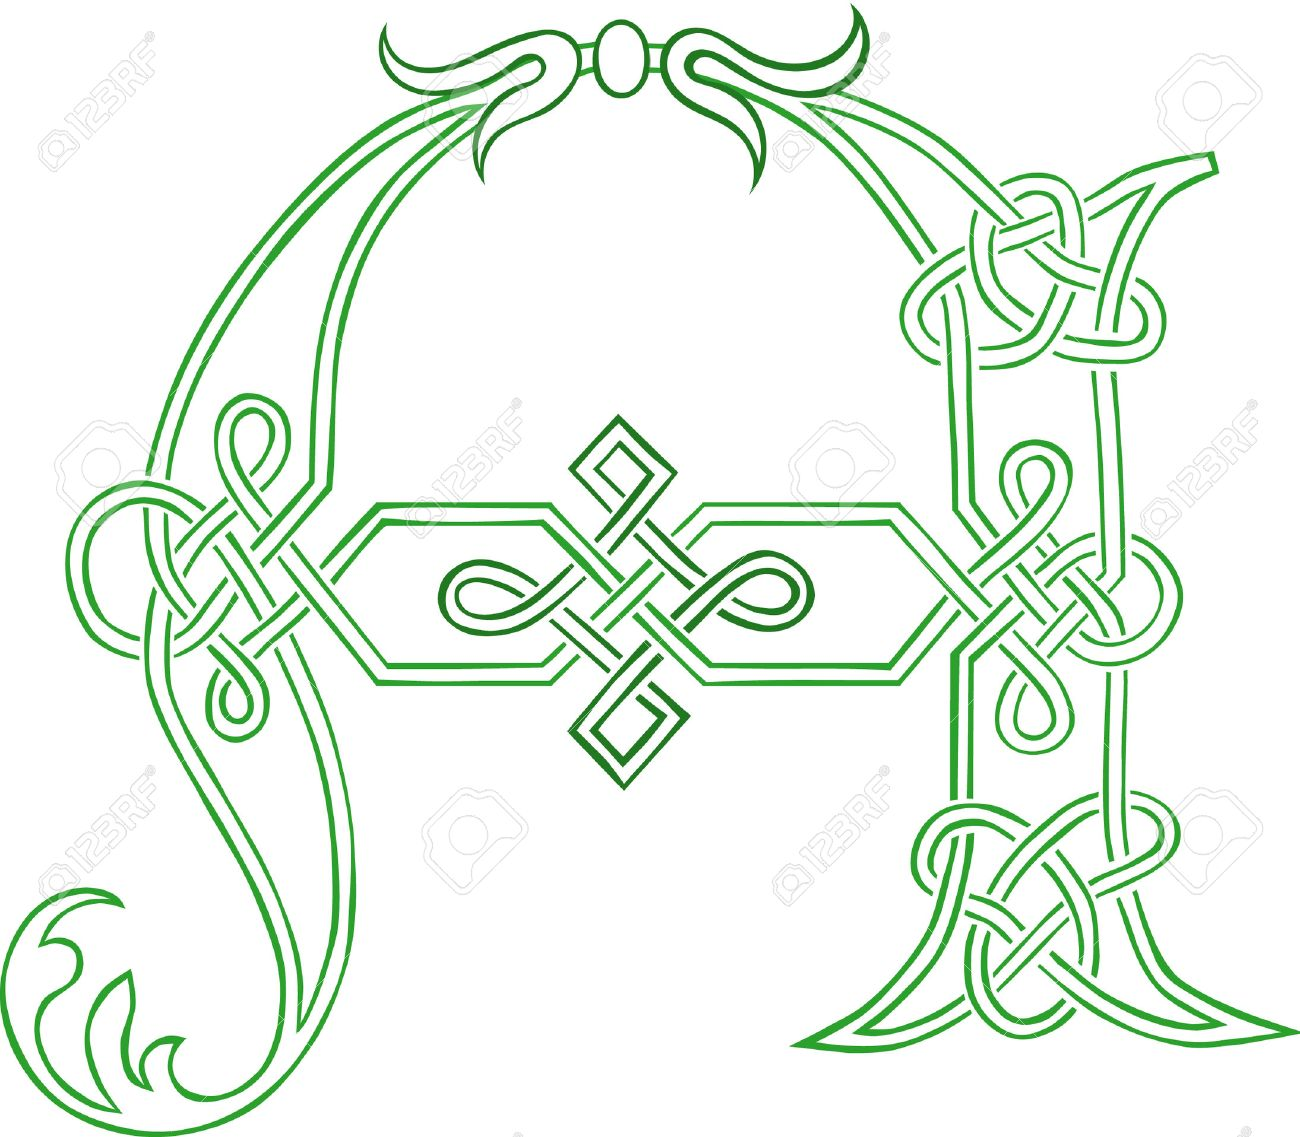 A Celtic Knot-work Capital Letter A Stylized Outline Royalty Free ...